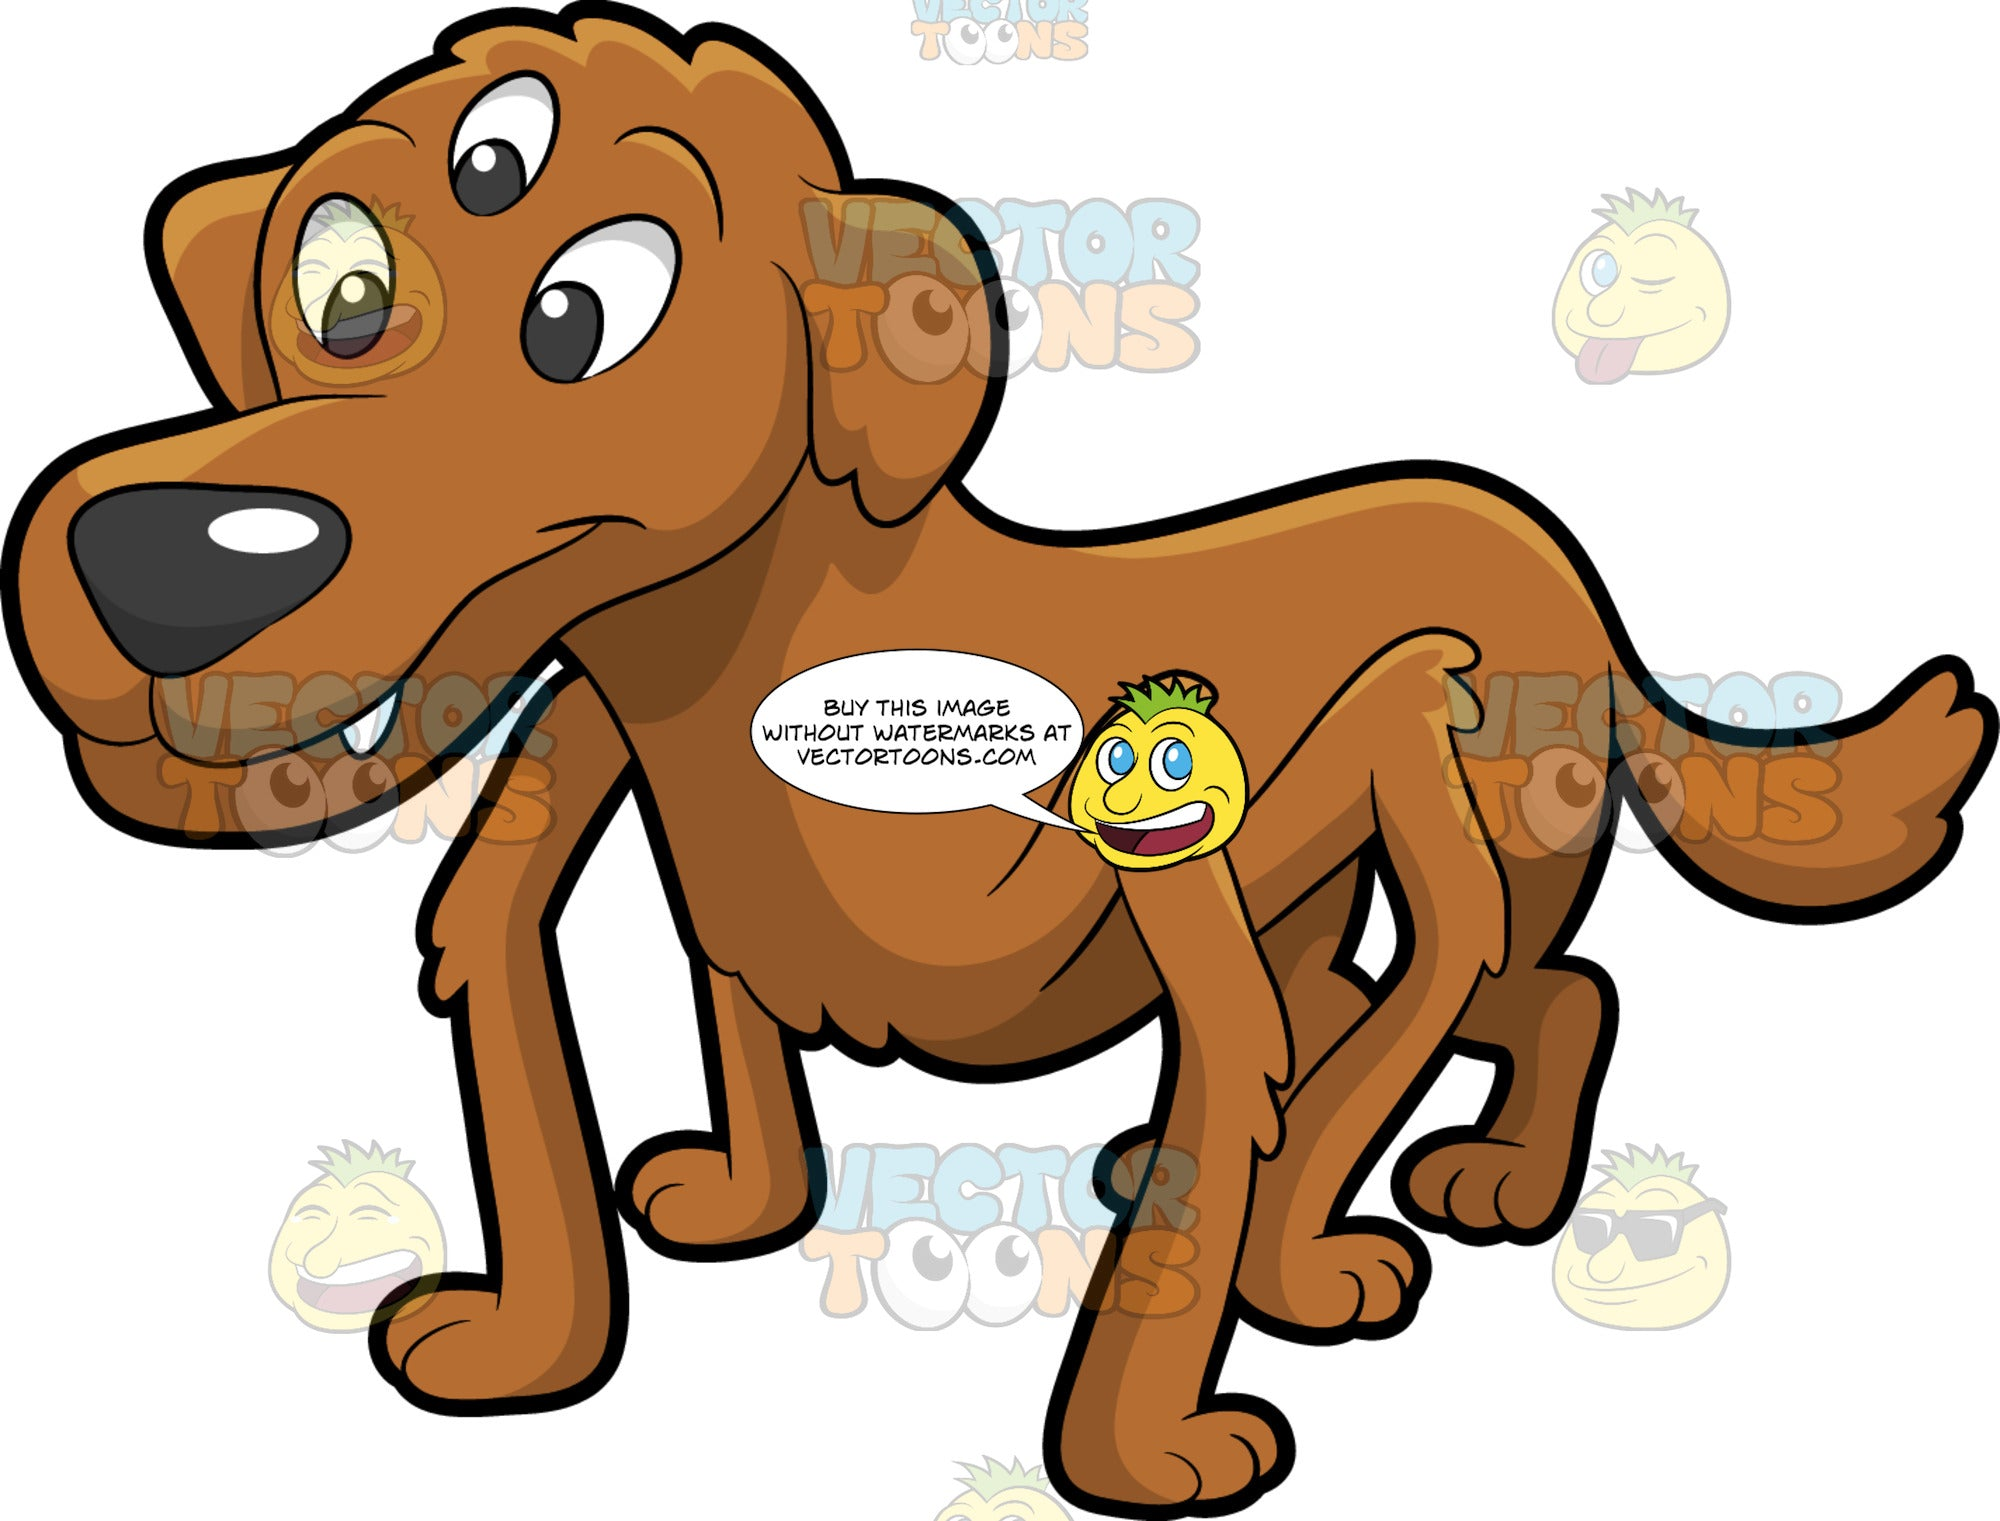 Half Dog Half Spider. A hybrid animal with a half dog, half spider body with a brown coat, three eyes, and eight legs